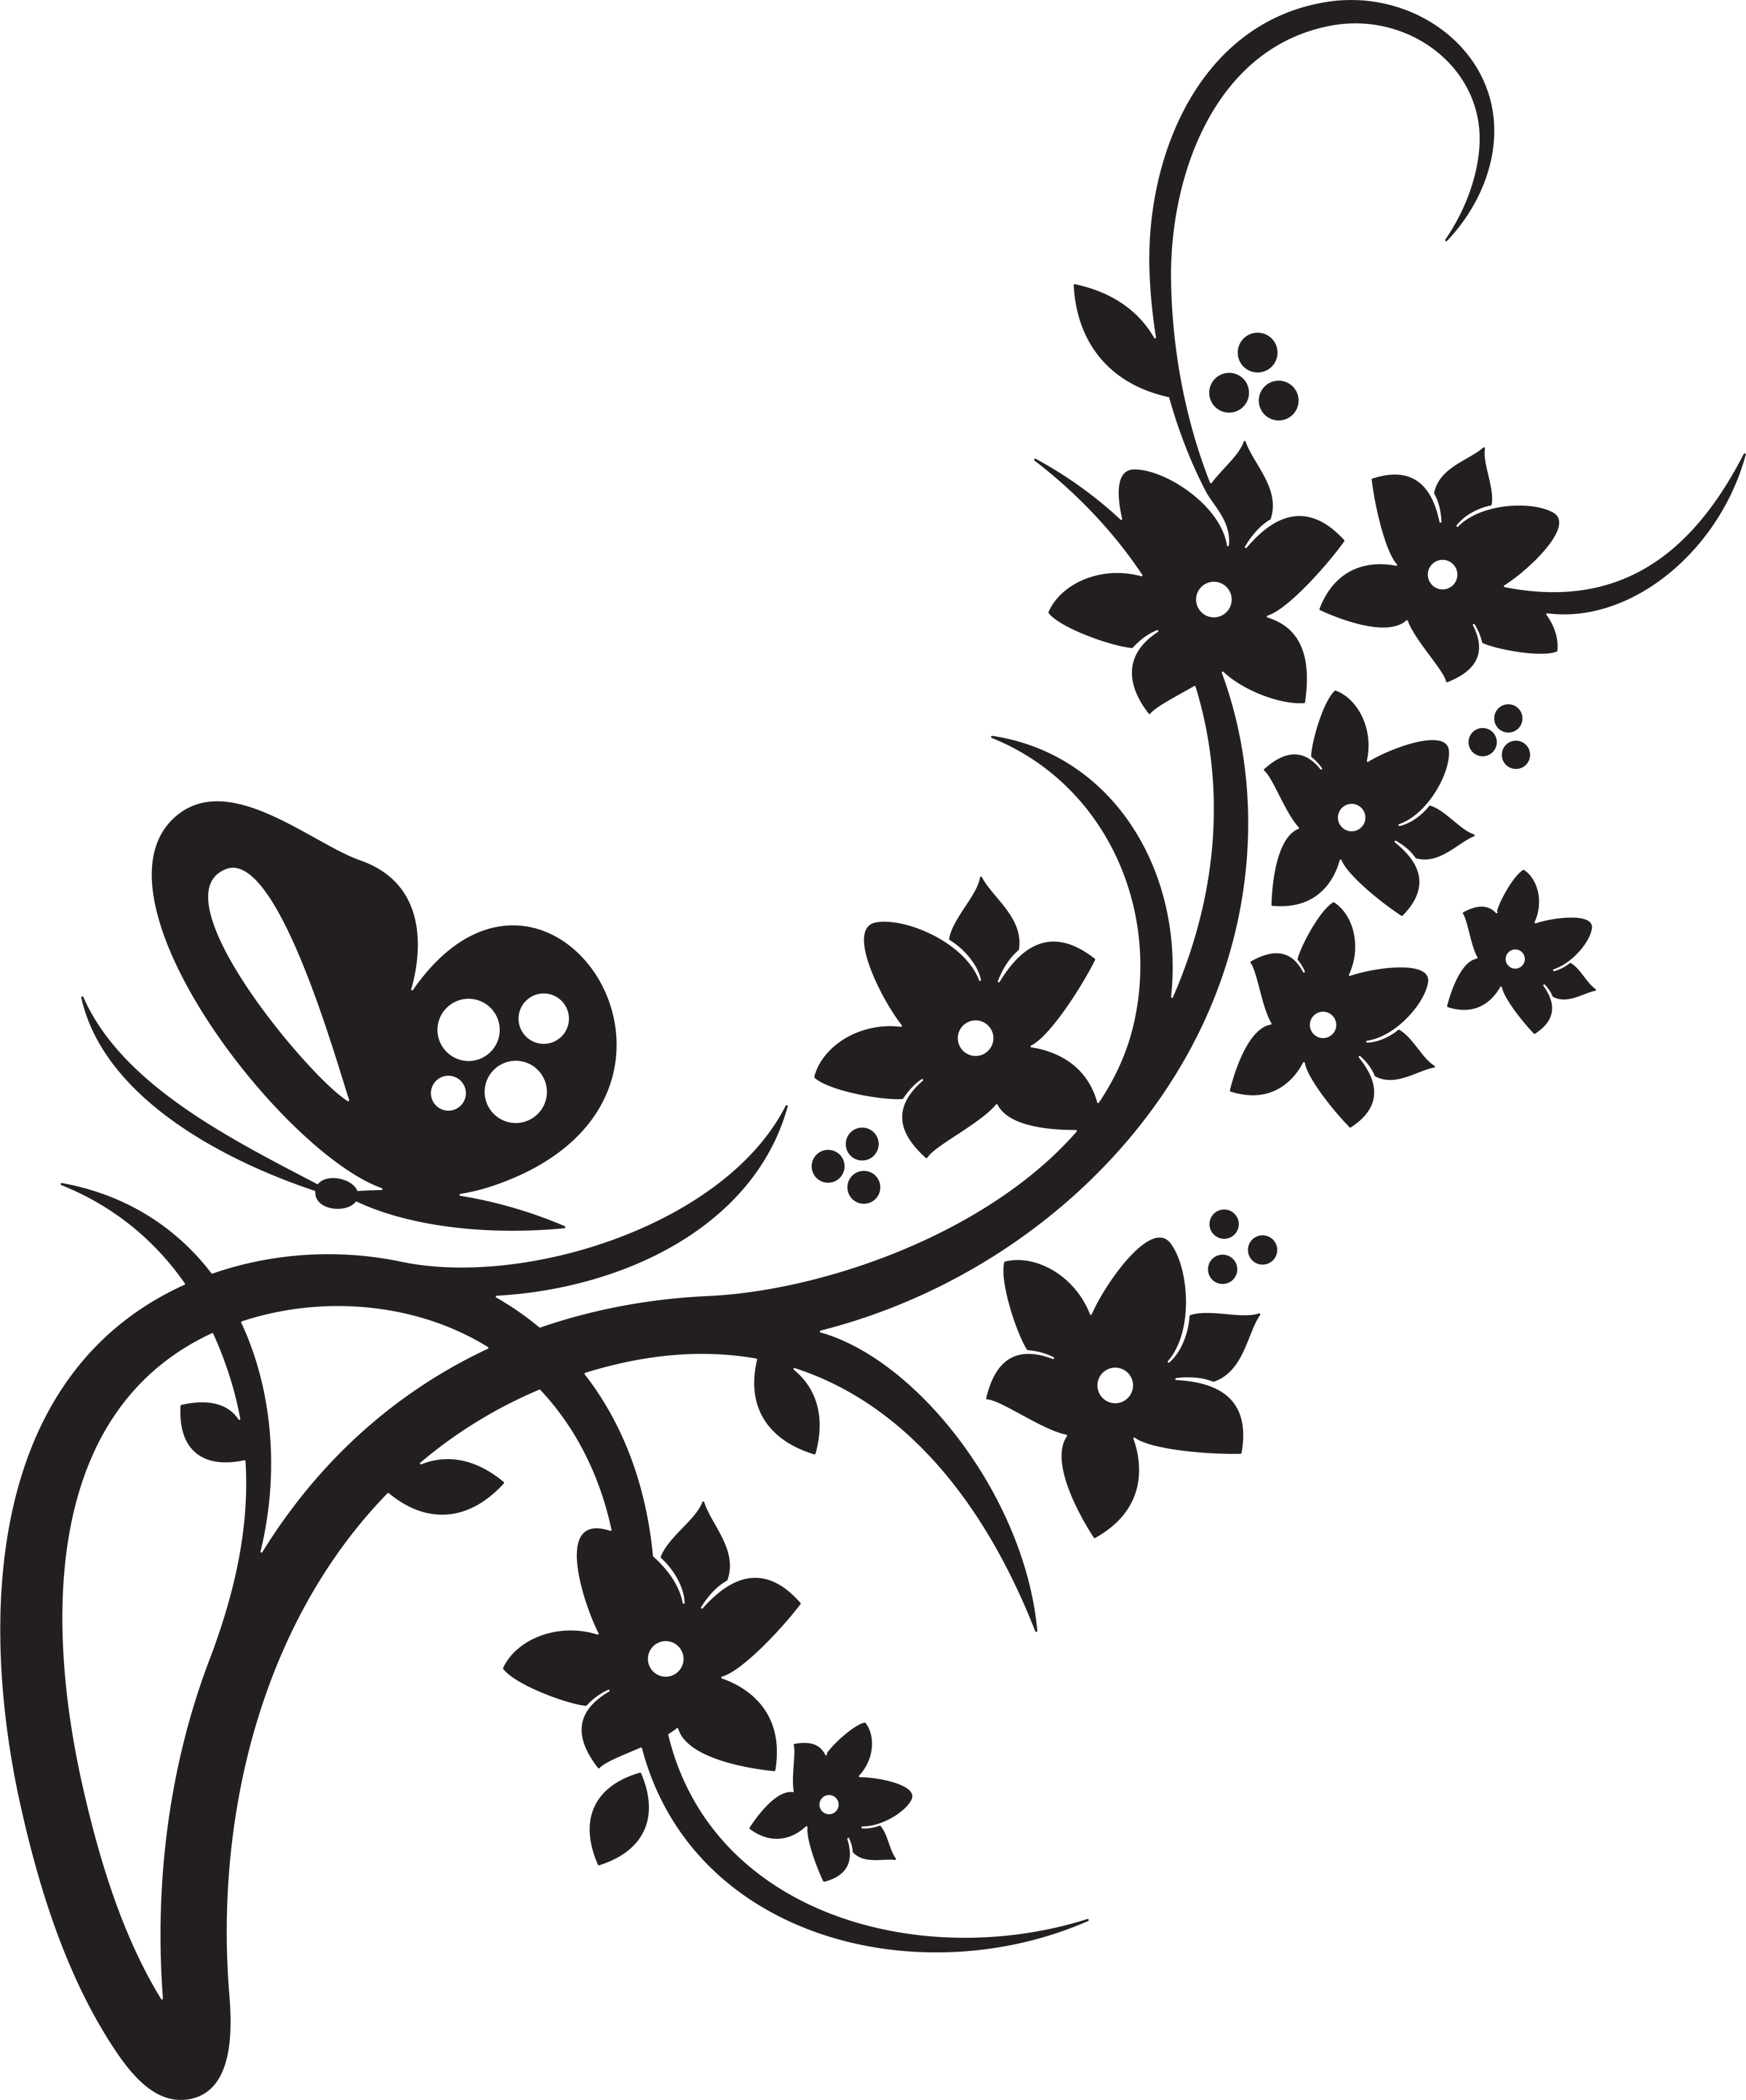 Anu cliparts black and white clipart transparent stock Wedding clipart full hd - Clip Art Library clipart transparent stock